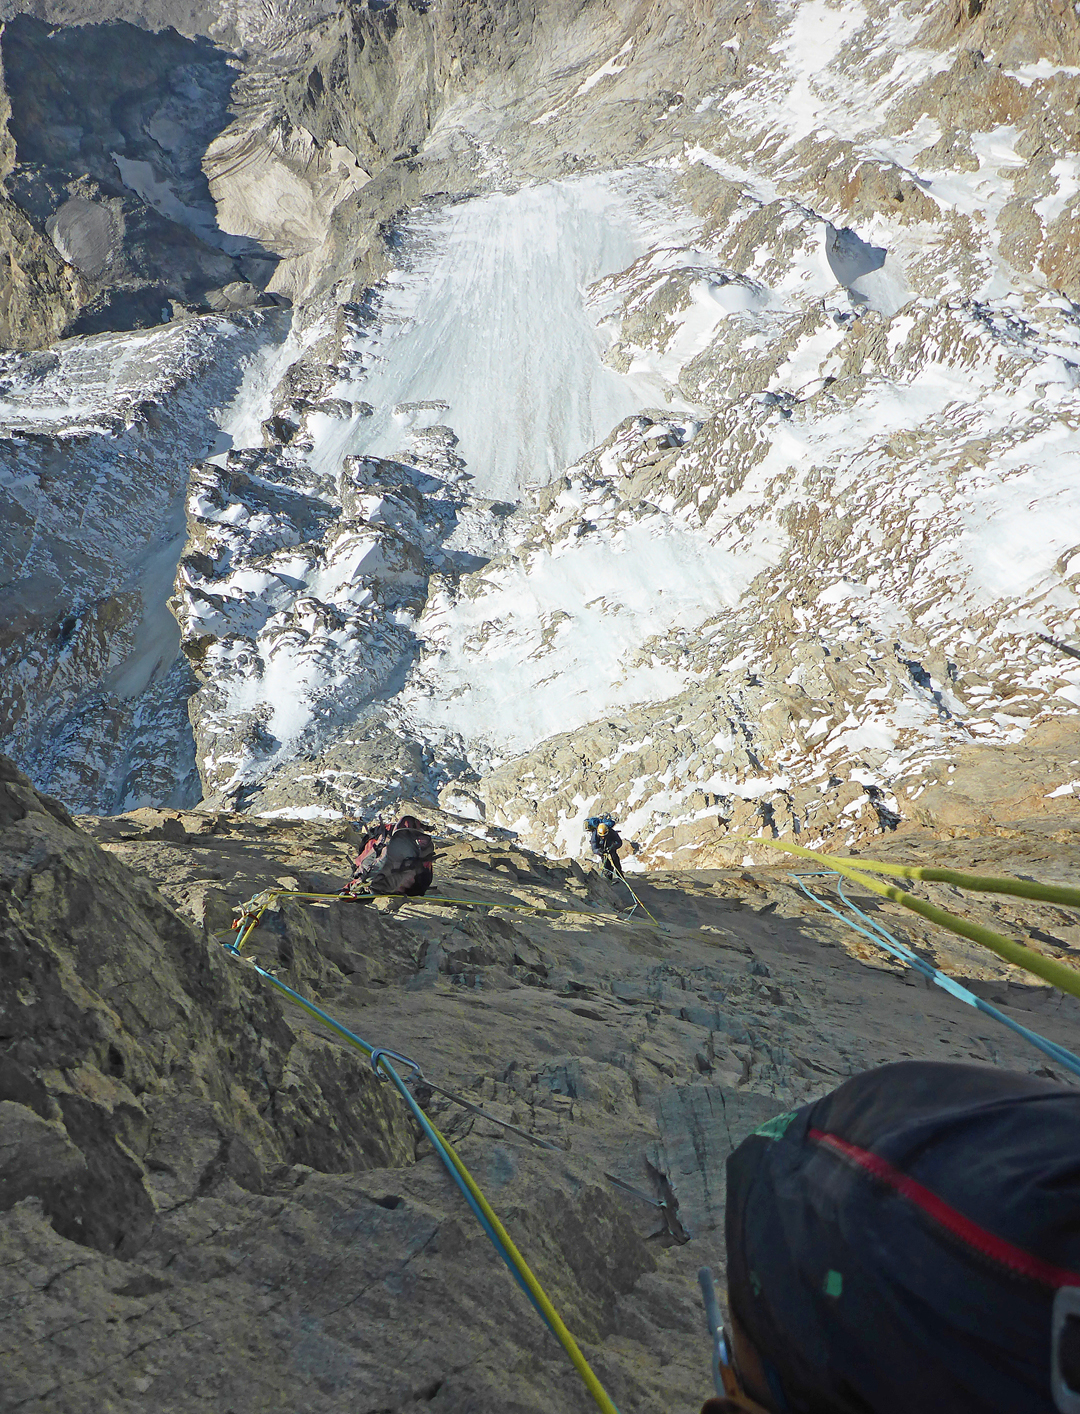 Giorgi Tepnadze follows a pitch on the Rockband. The middle icefield of the route is visible below.